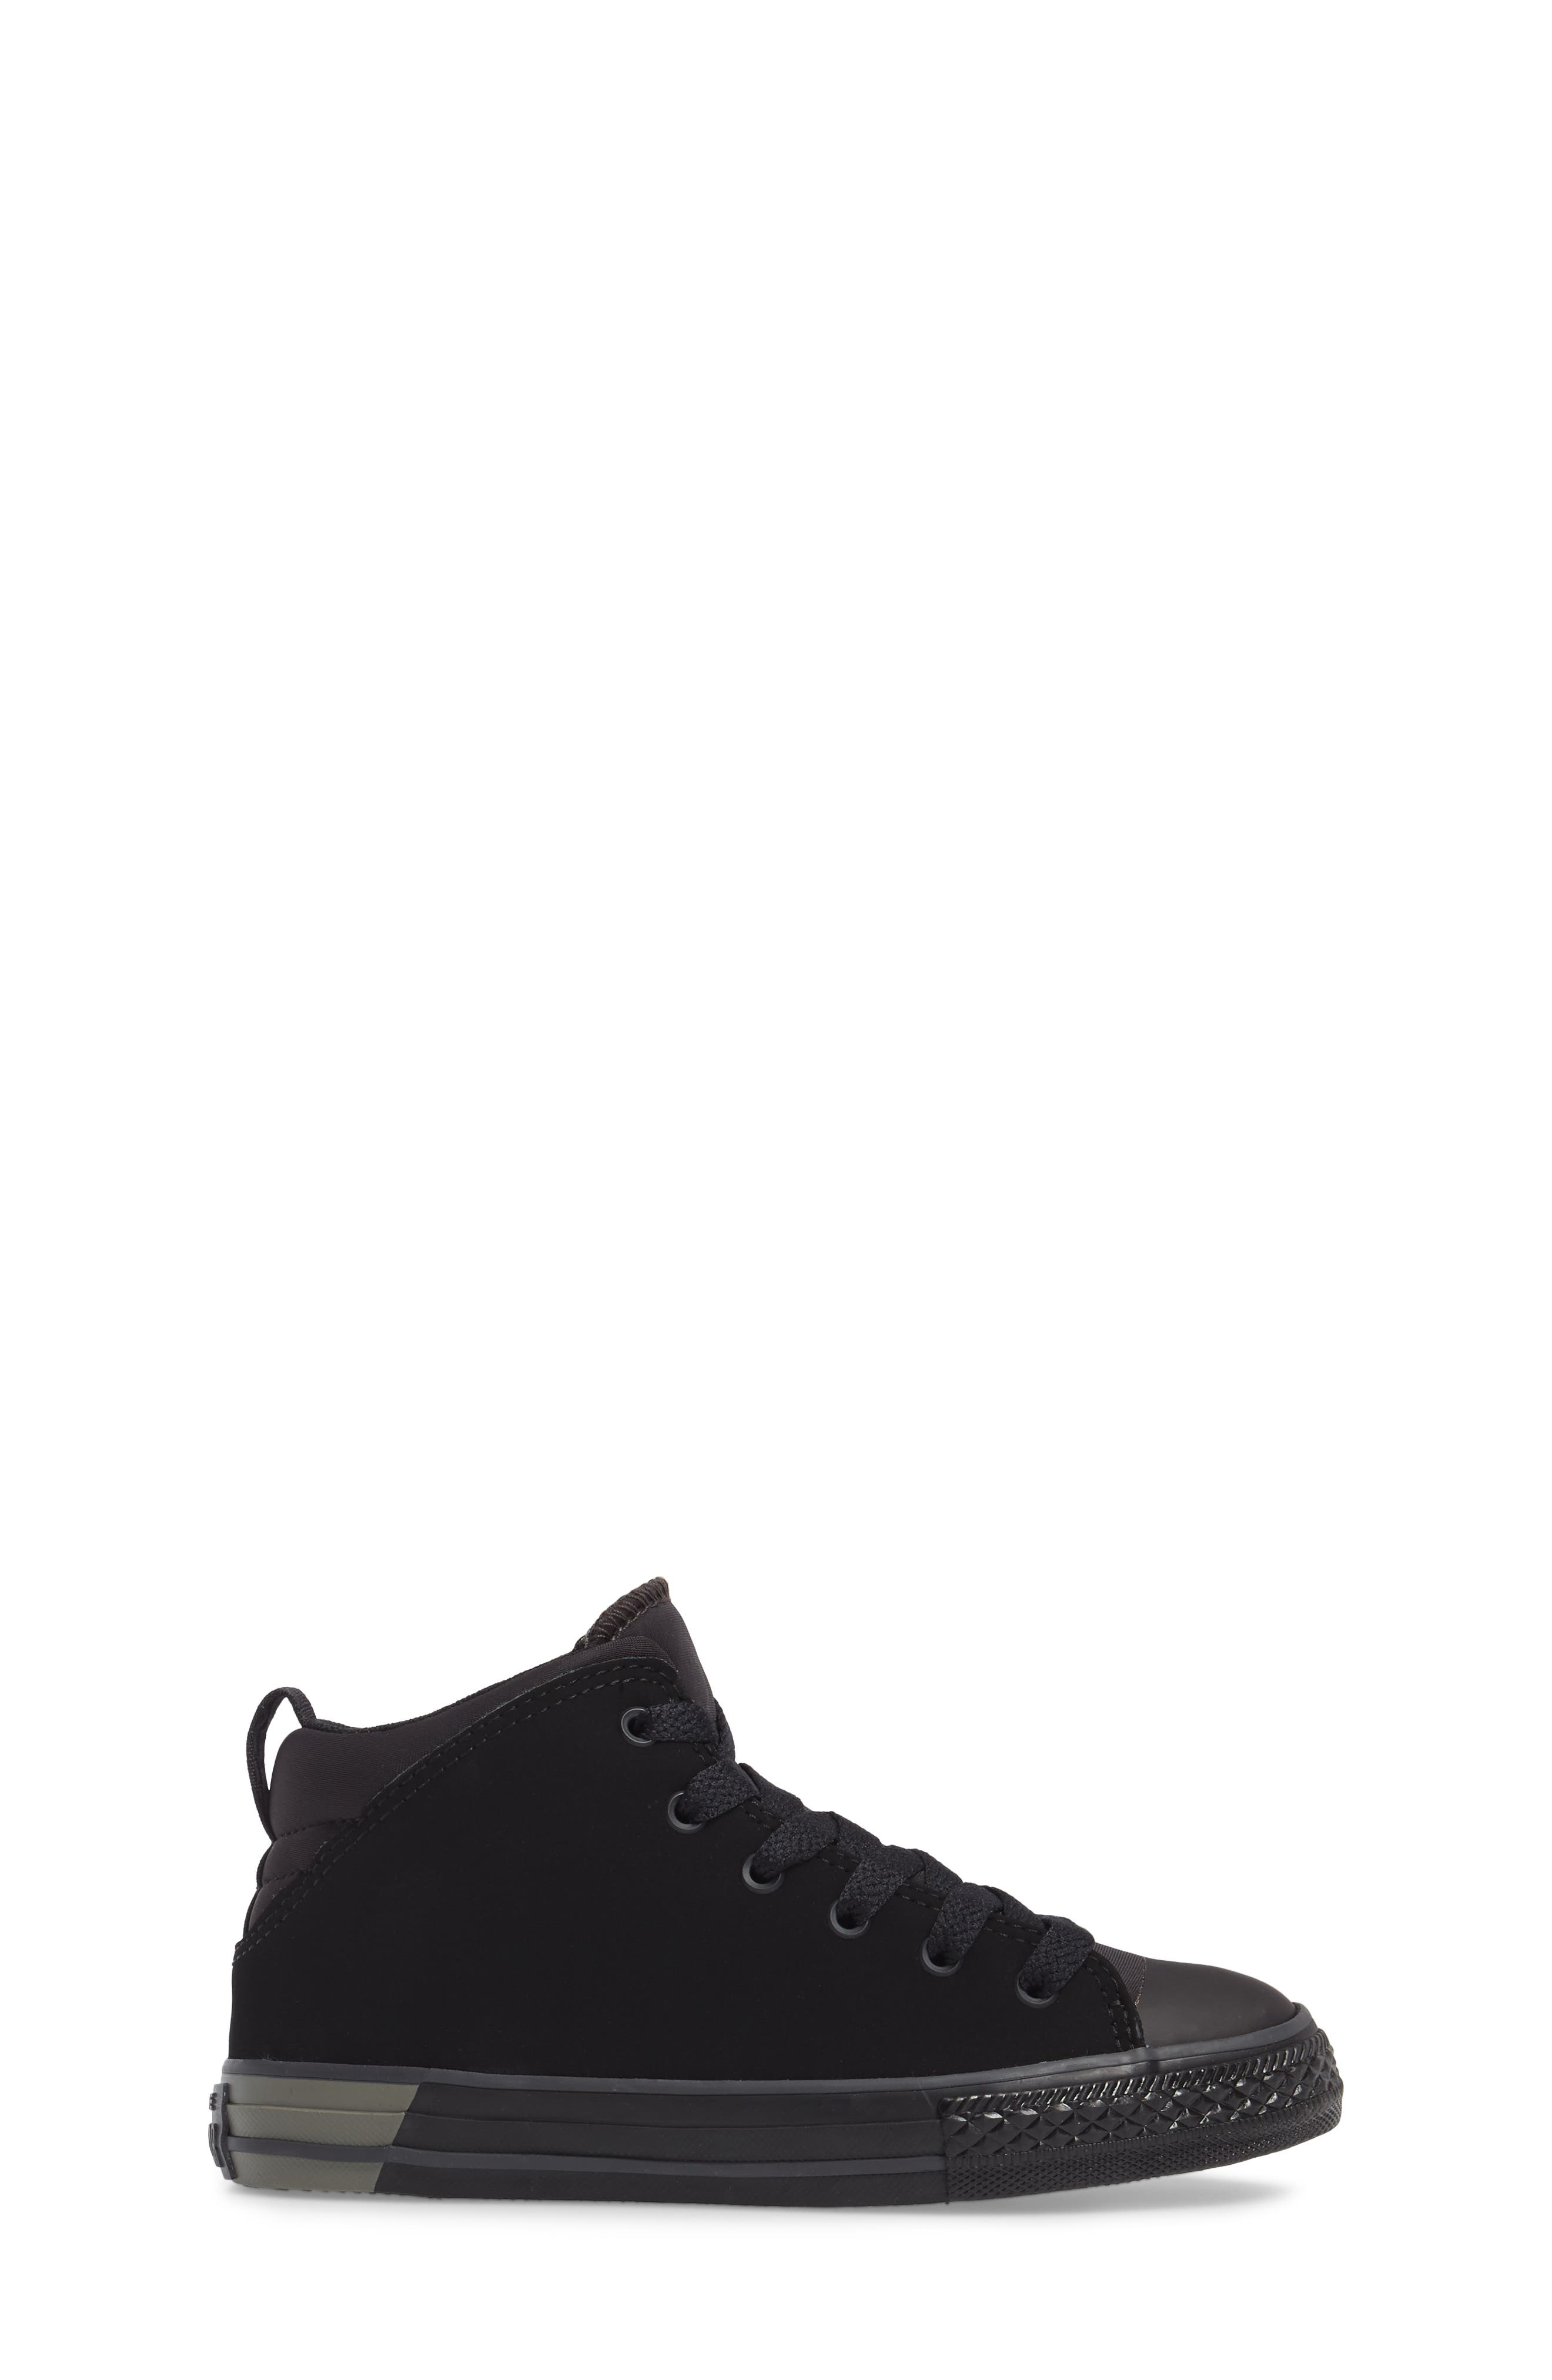 Chuck Taylor<sup>®</sup> All Star<sup>®</sup> Official High Top Sneaker,                             Alternate thumbnail 3, color,                             001